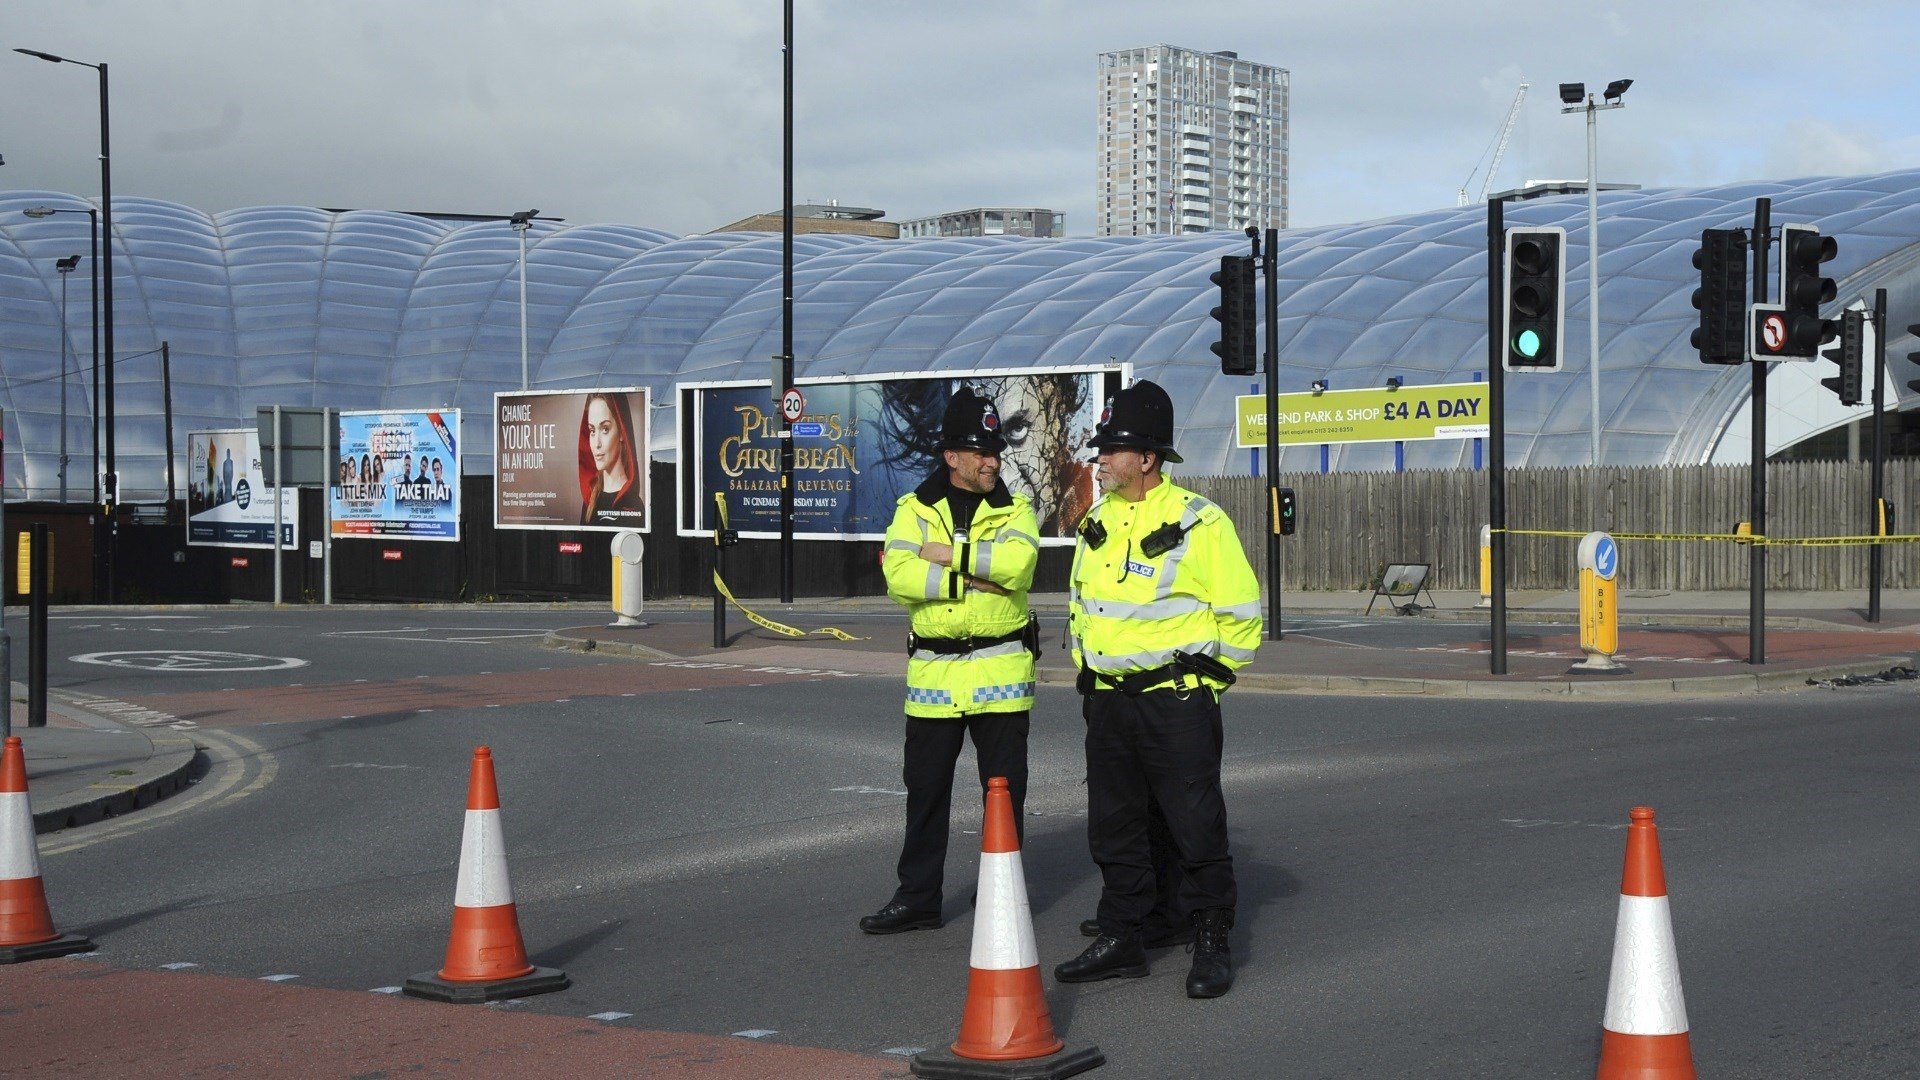 Police block a road outside the Manchester Arena in central Manchester, England Tuesday May 23, 2017. An apparent suicide bomber set off an improvised explosive device that killed over a dozen people at the end of an Ariana Grande concert on Monday, Manch